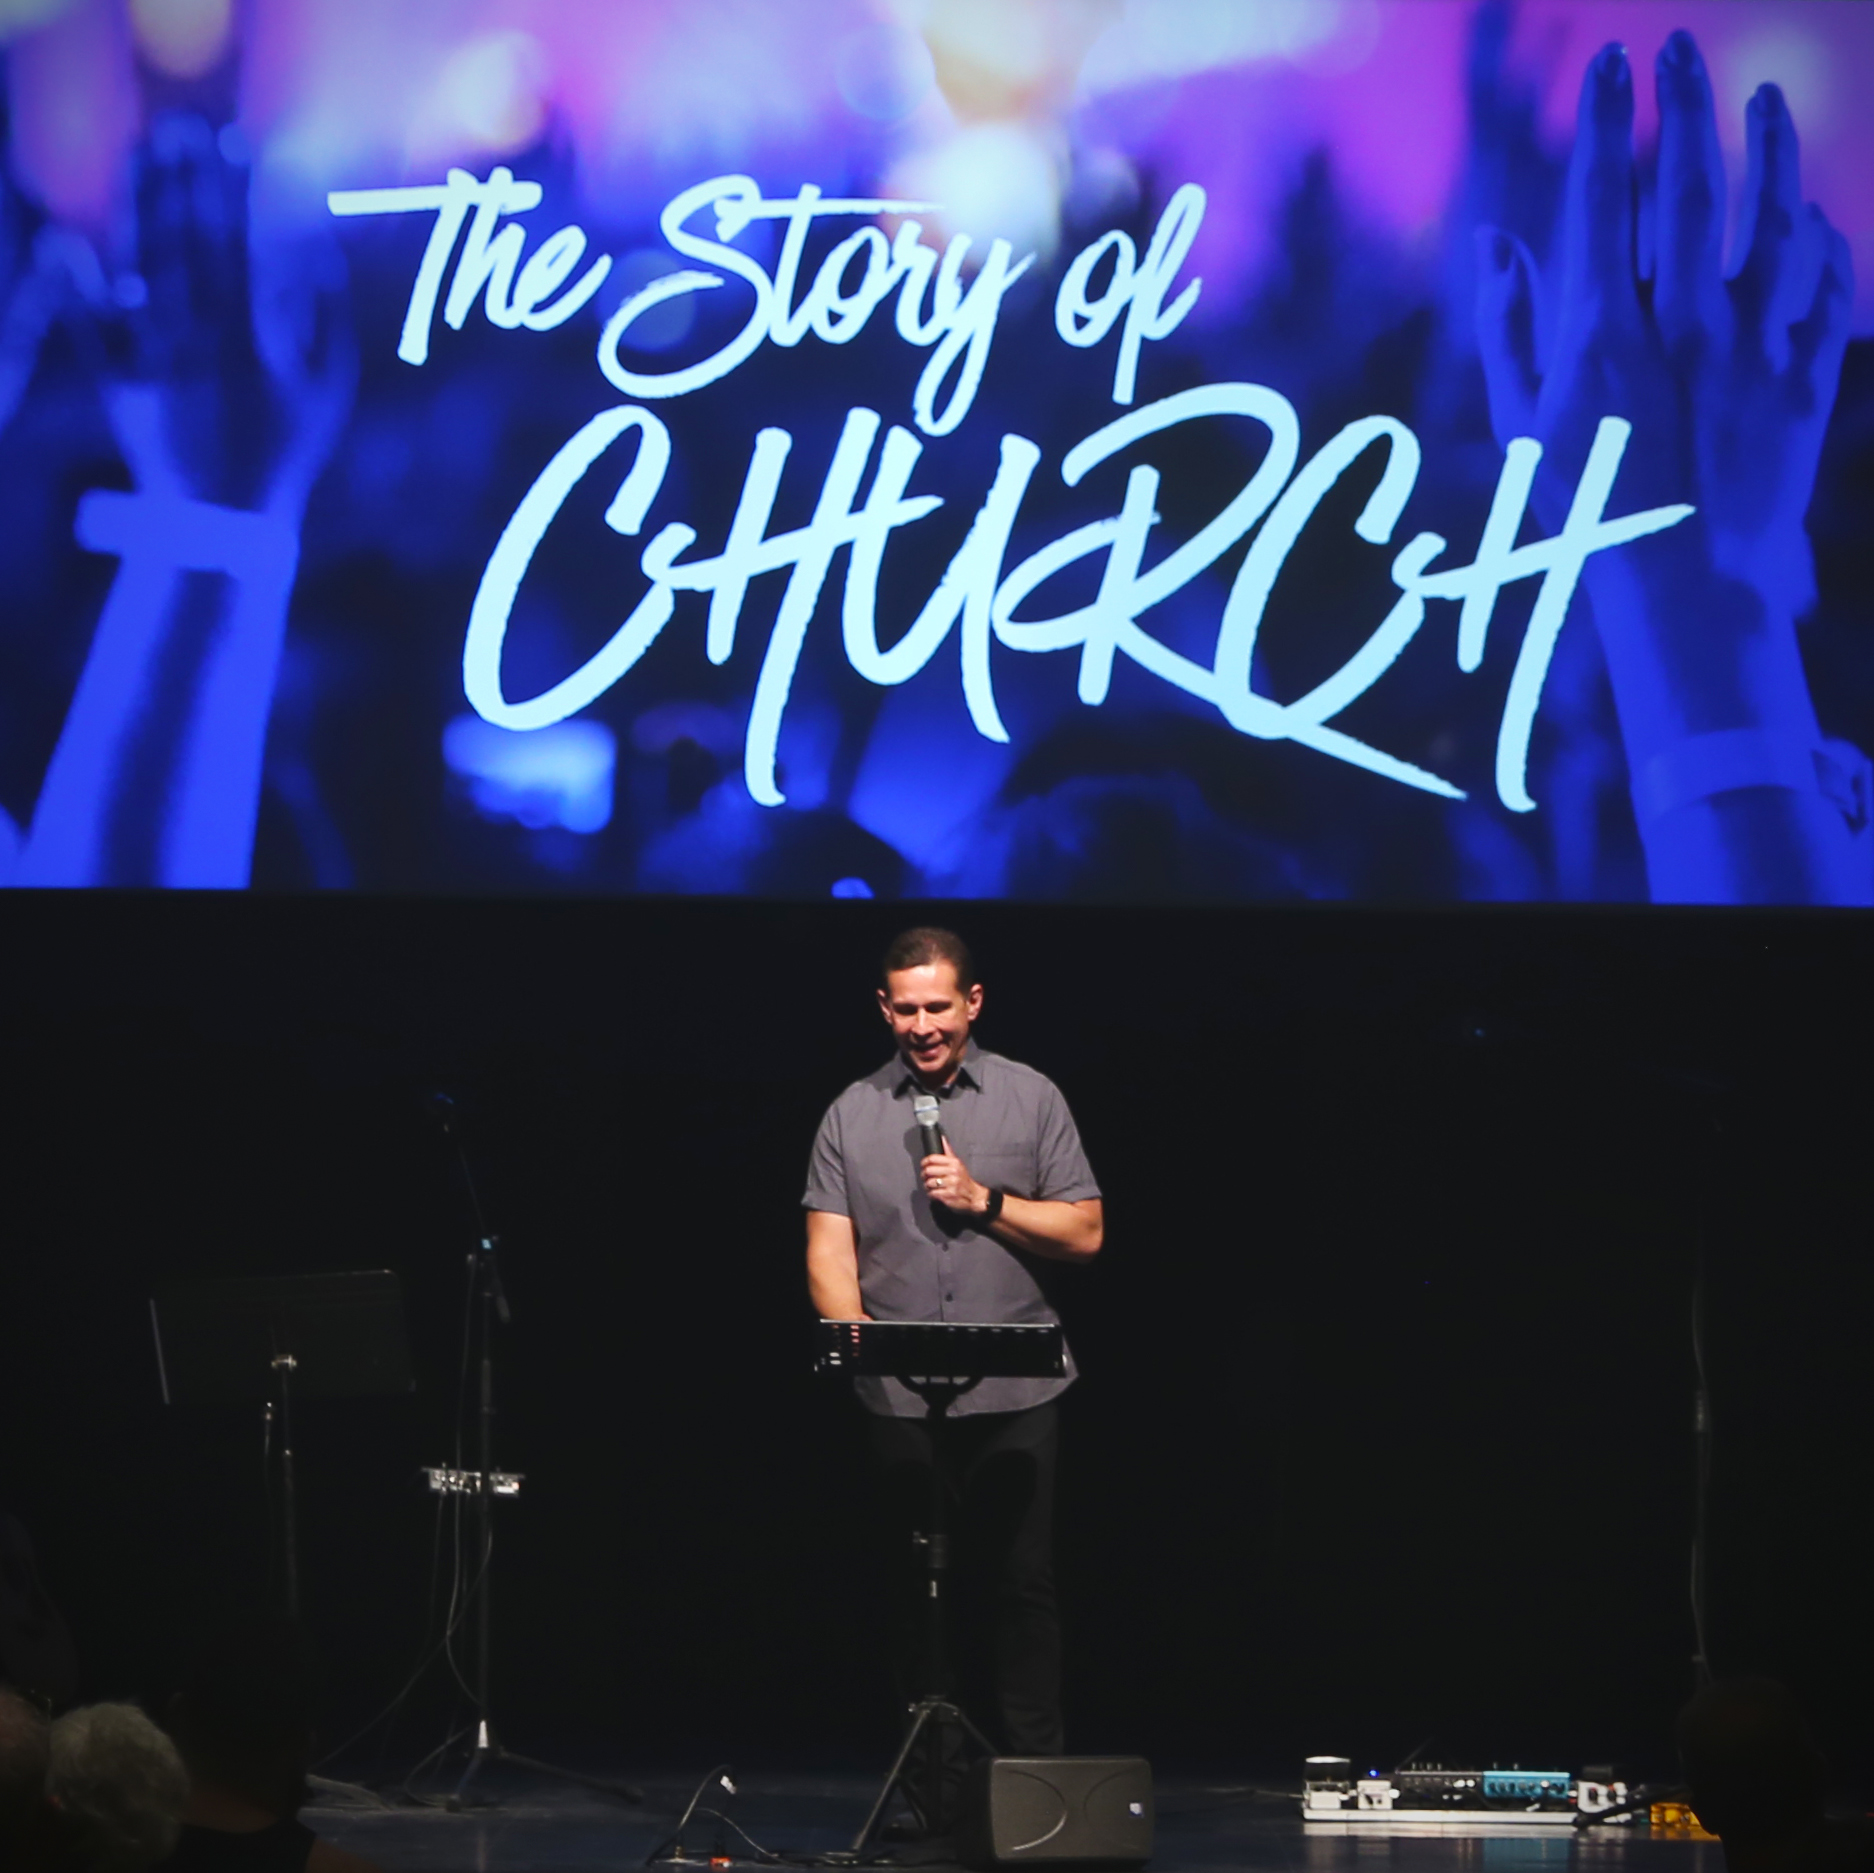 The Story of Church